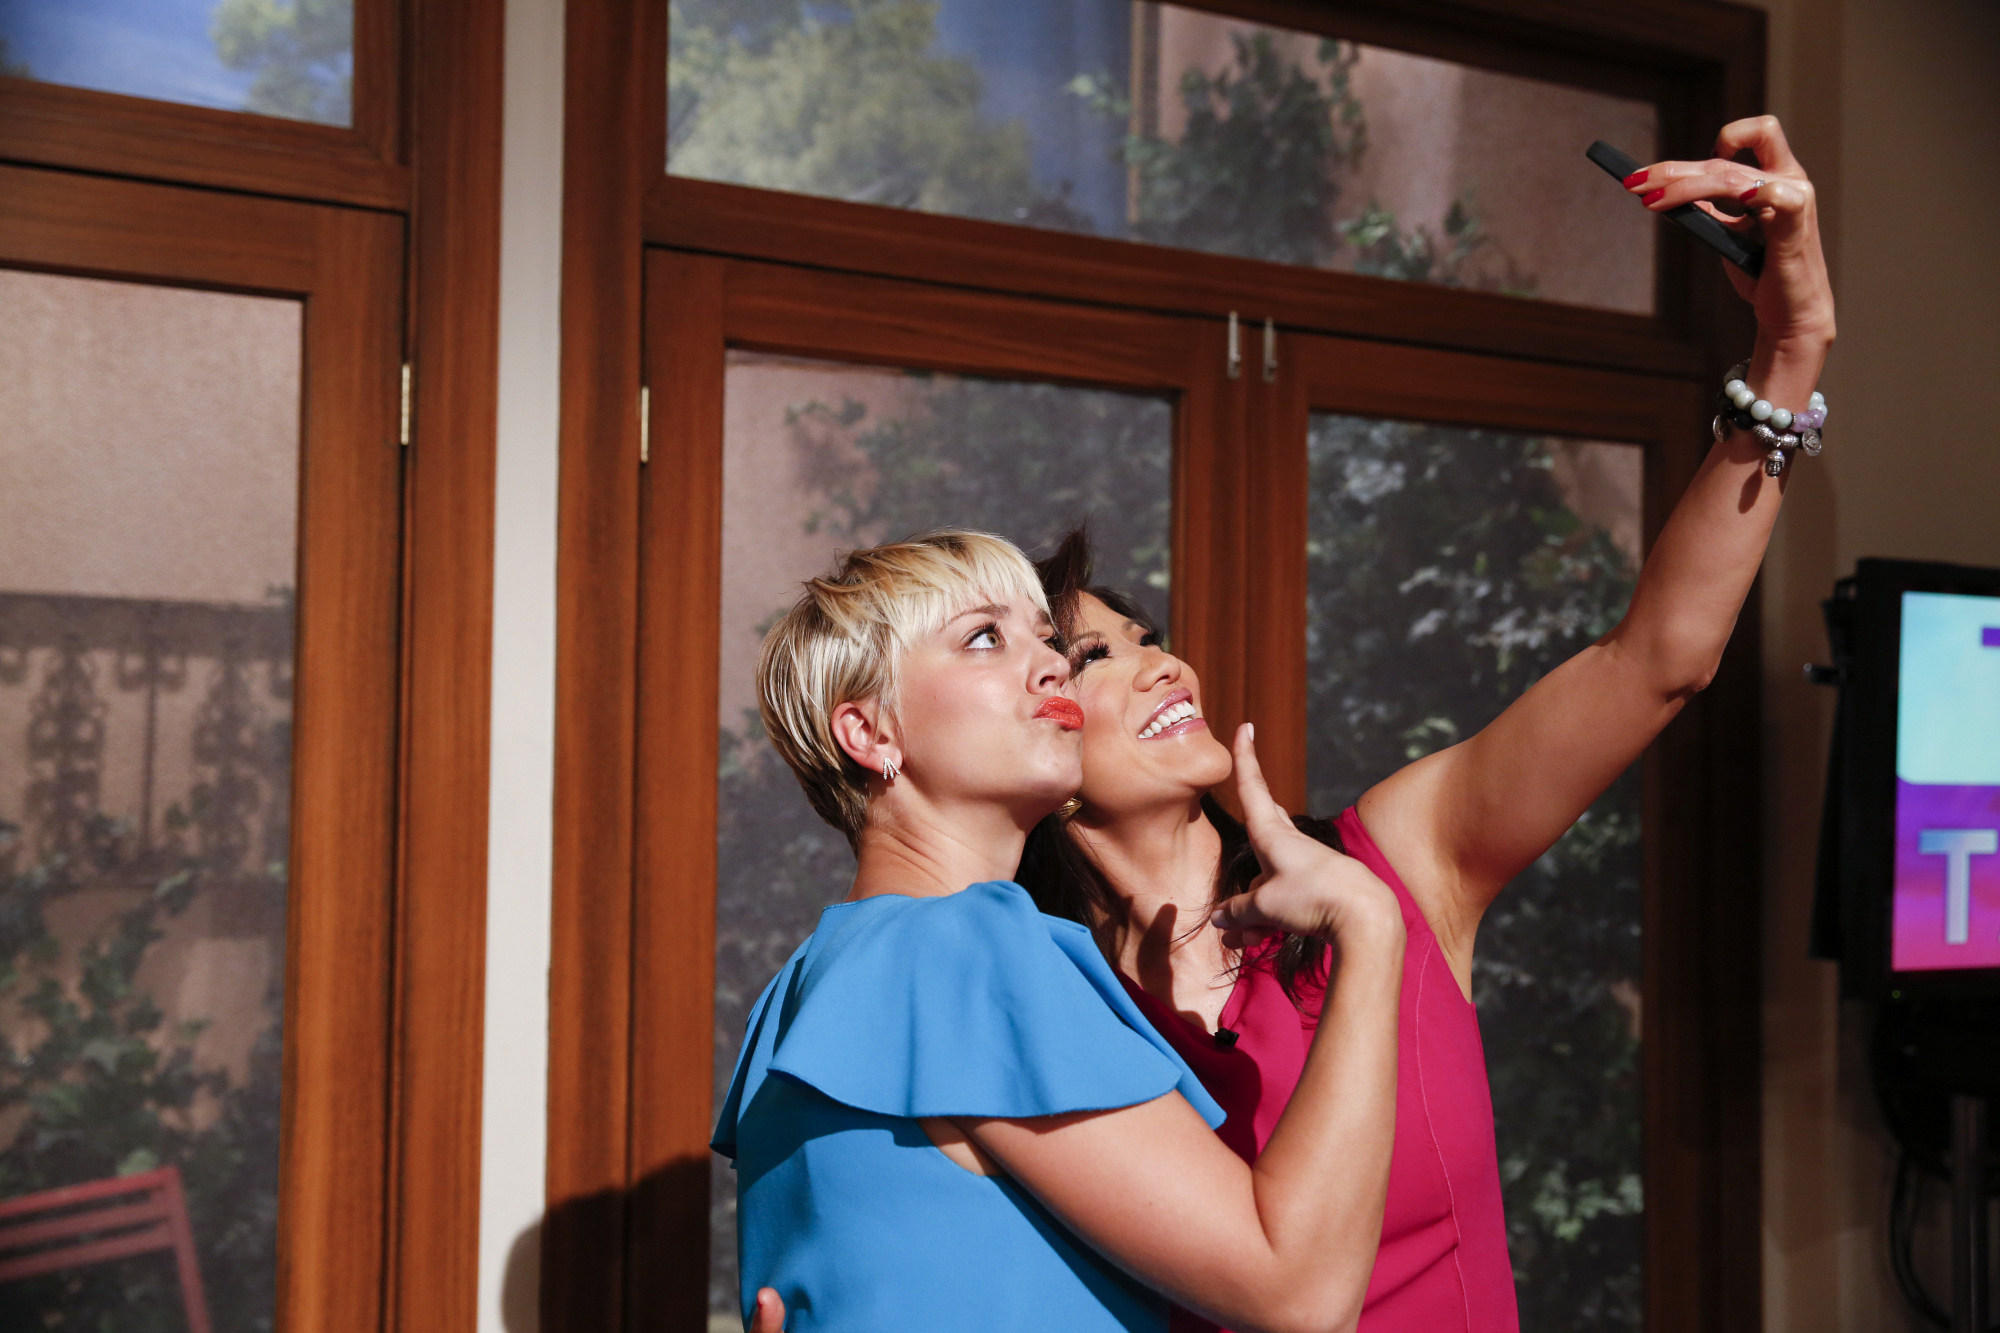 7. Julie taking selfies with Kaley Cuoco-Sweeting.